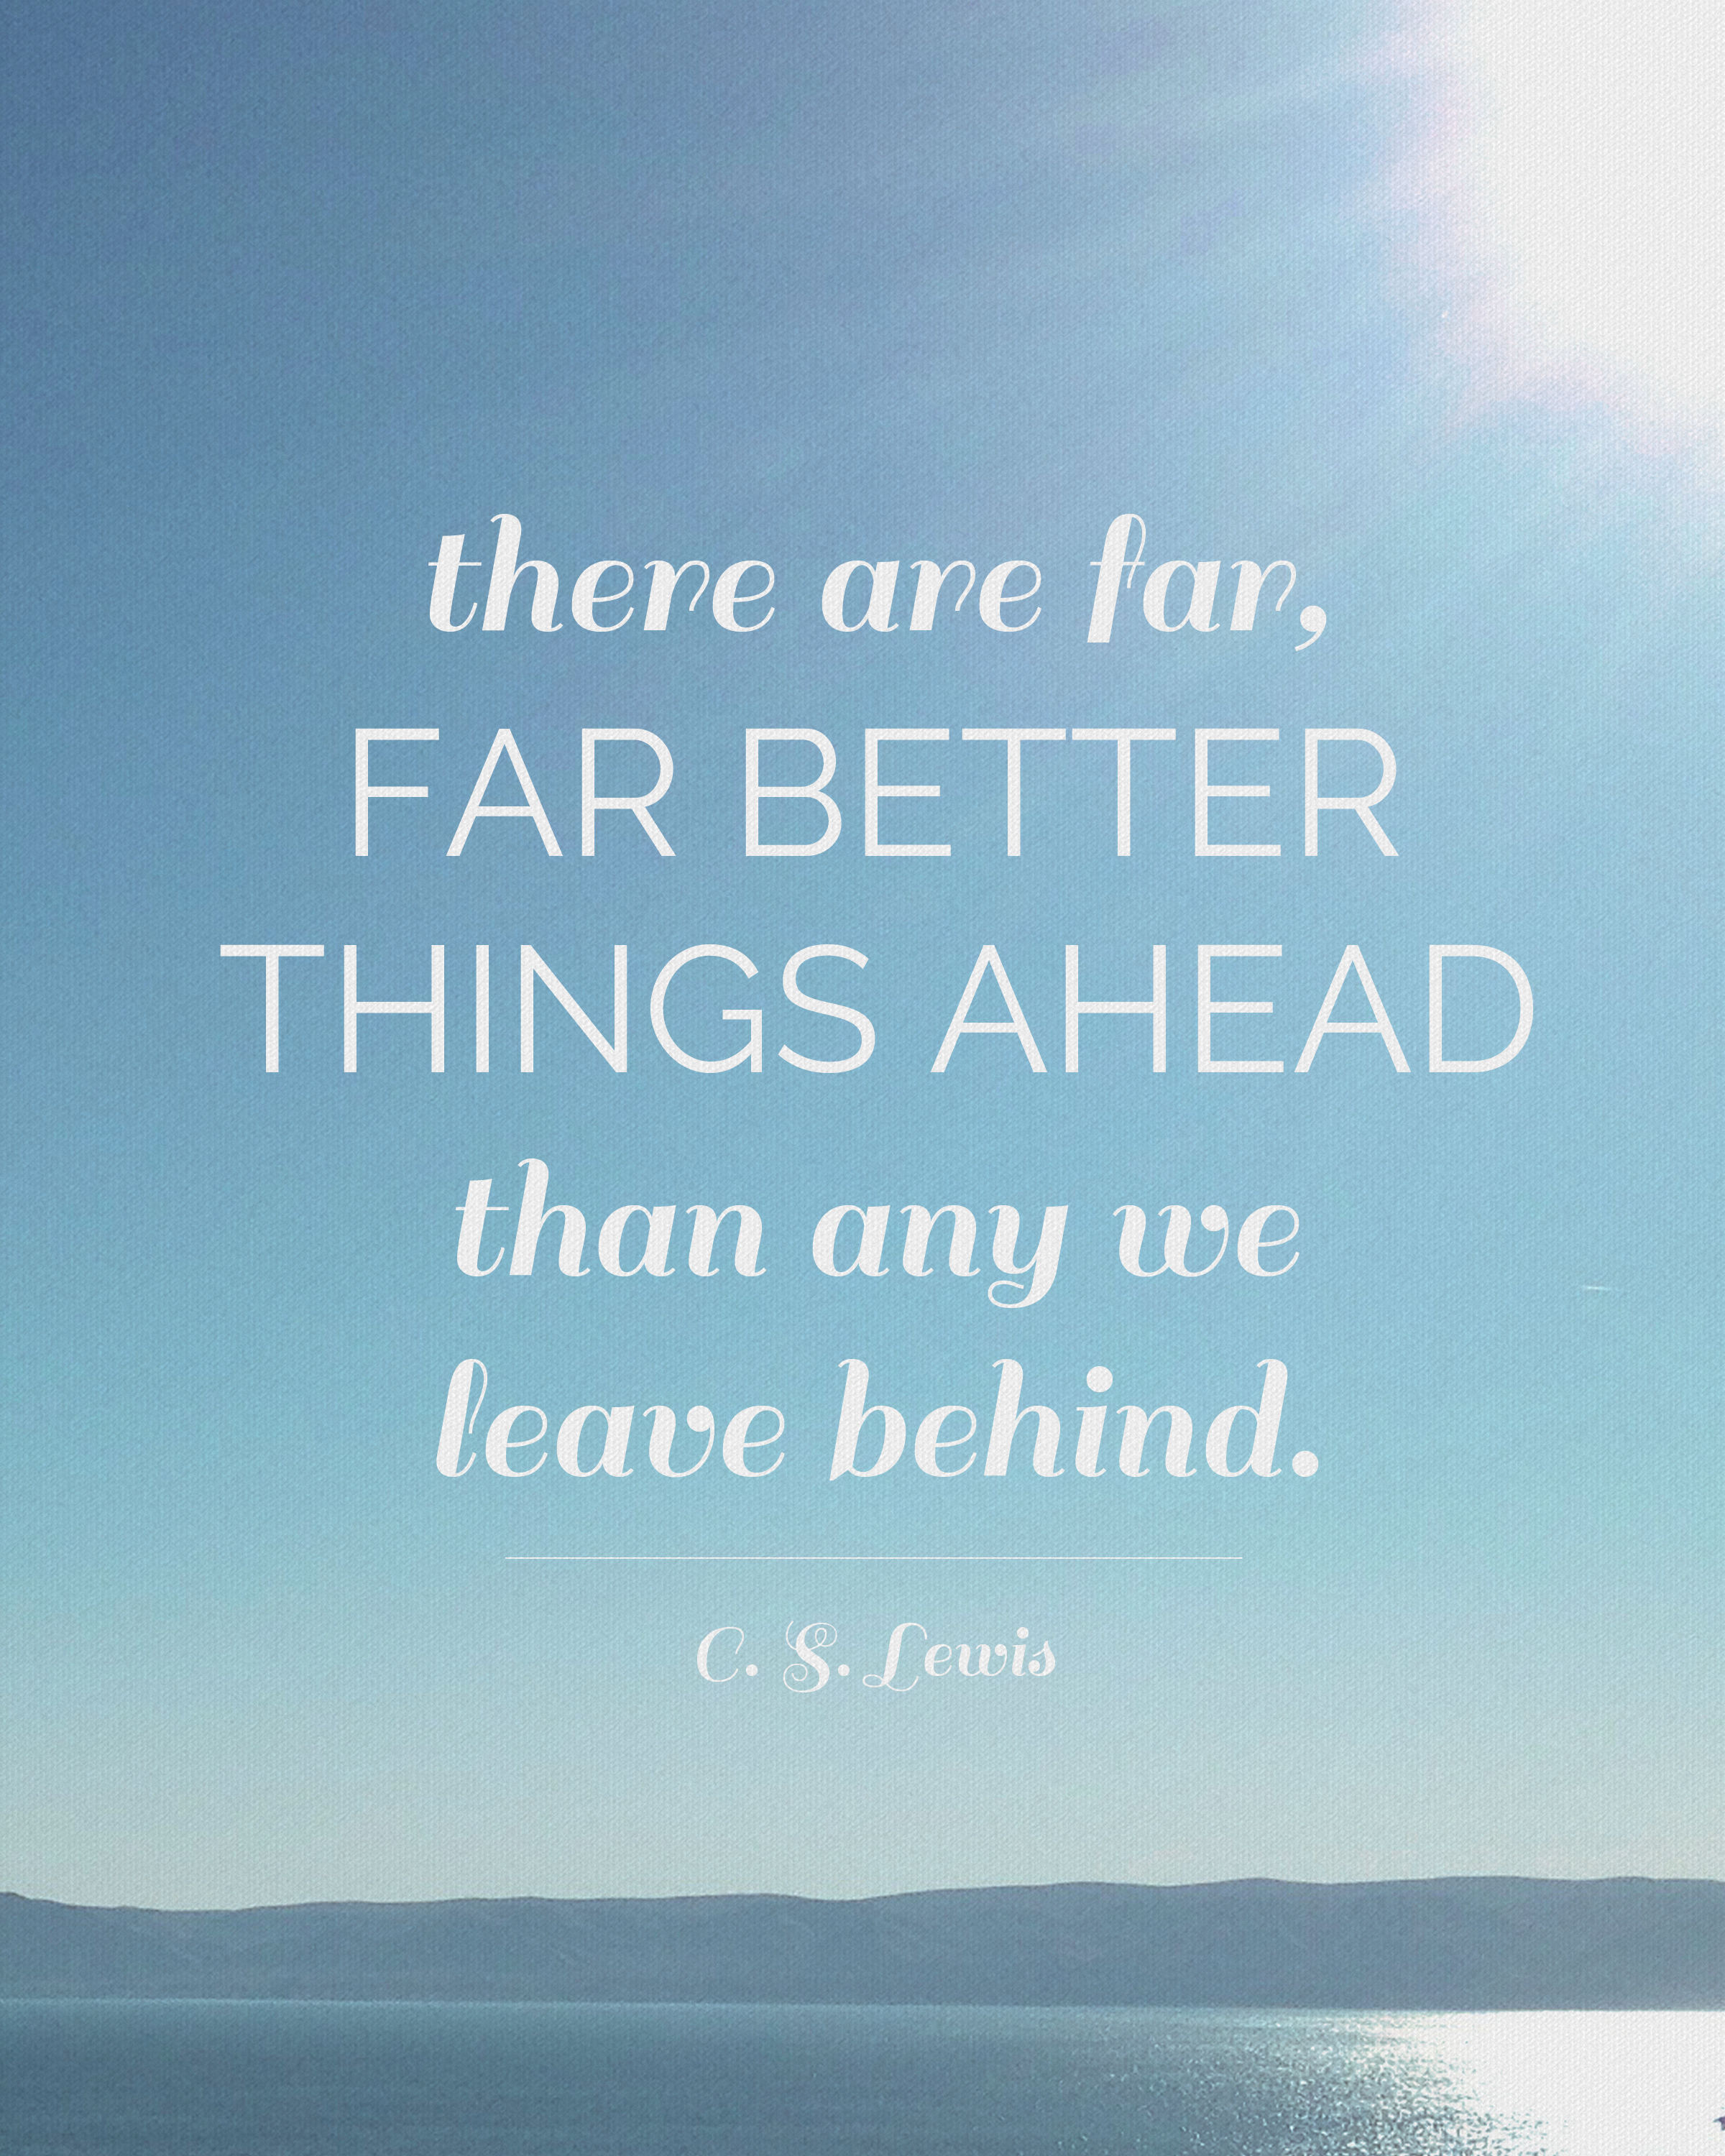 free C.S. Lewis quote printable: far better things ahead - Its Always Au...